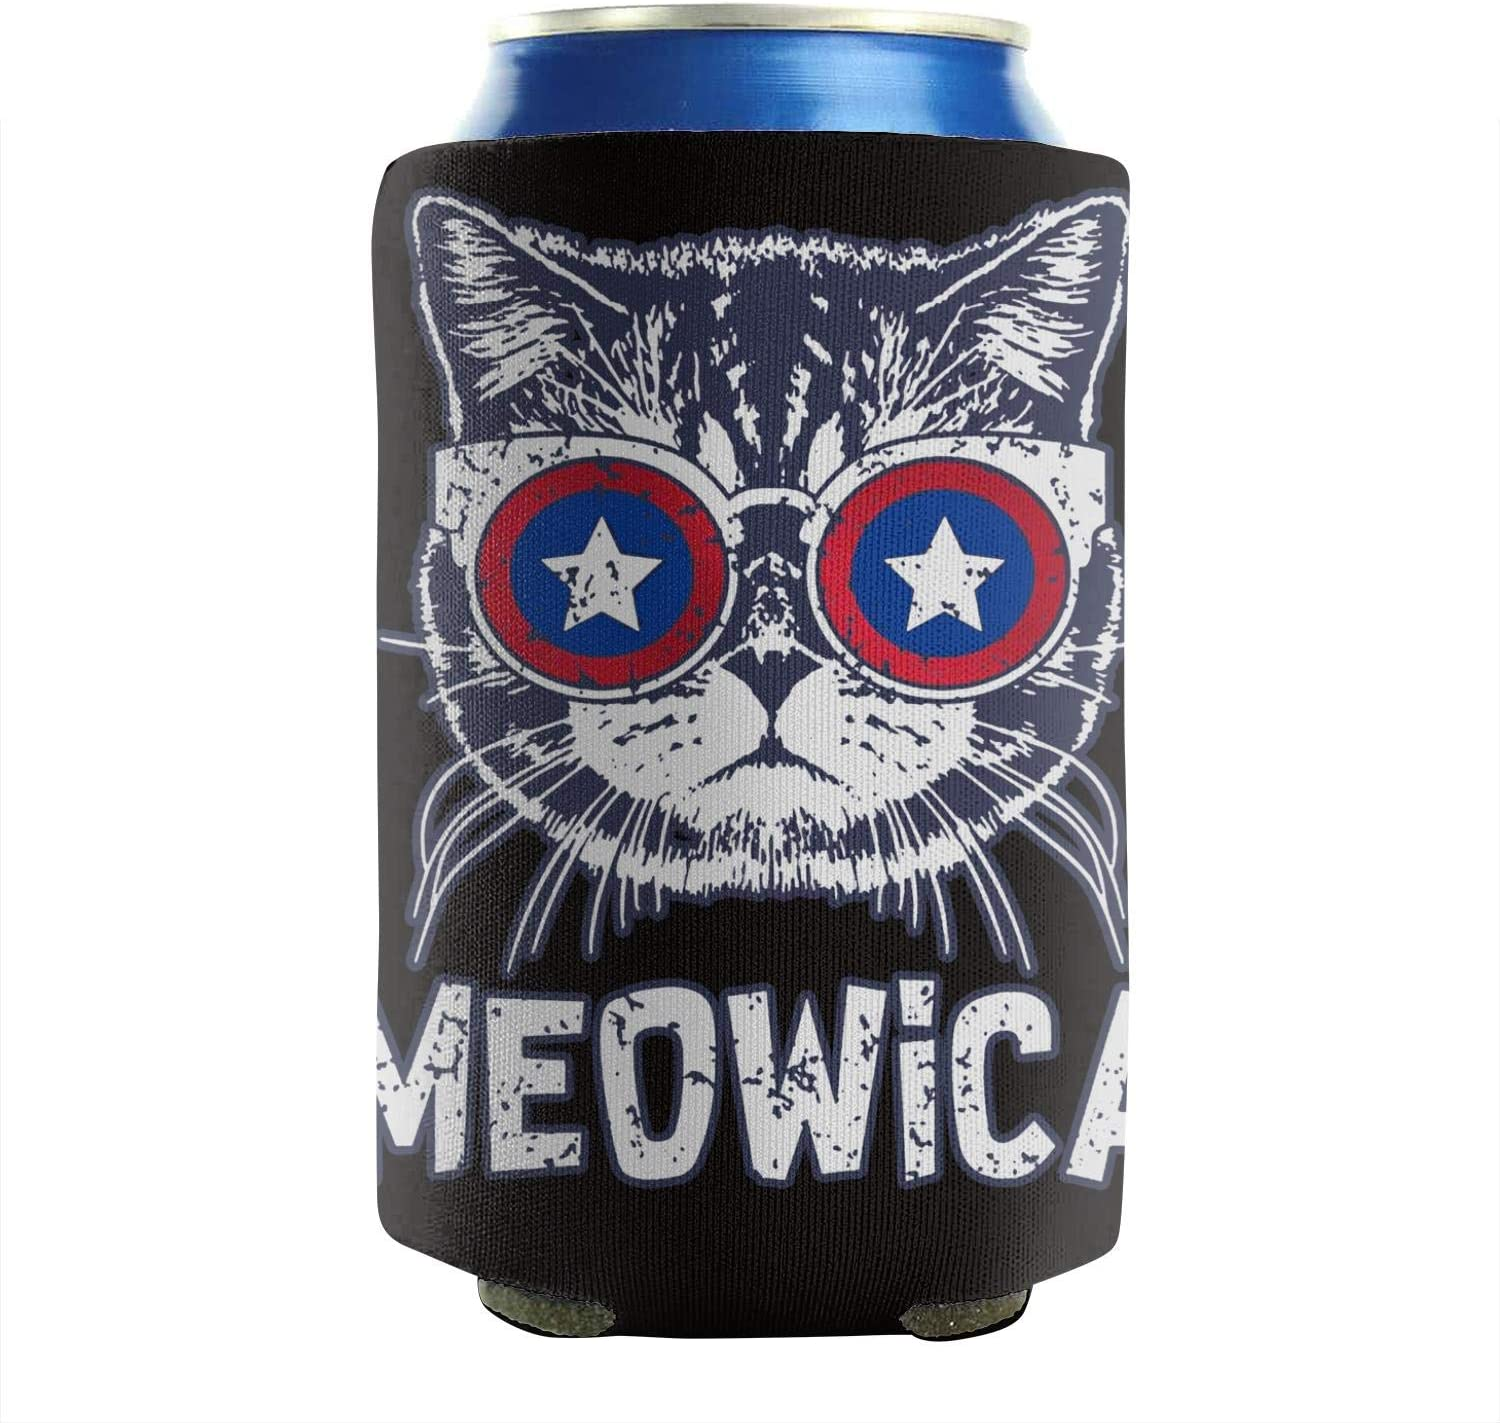 Meowica America Patriot Cat 12-16 OZ Bottles Insulated Beverage Beer Can Sleeves Non-Slip Can Cooler Covers Collapsible Set Of 2 Summer